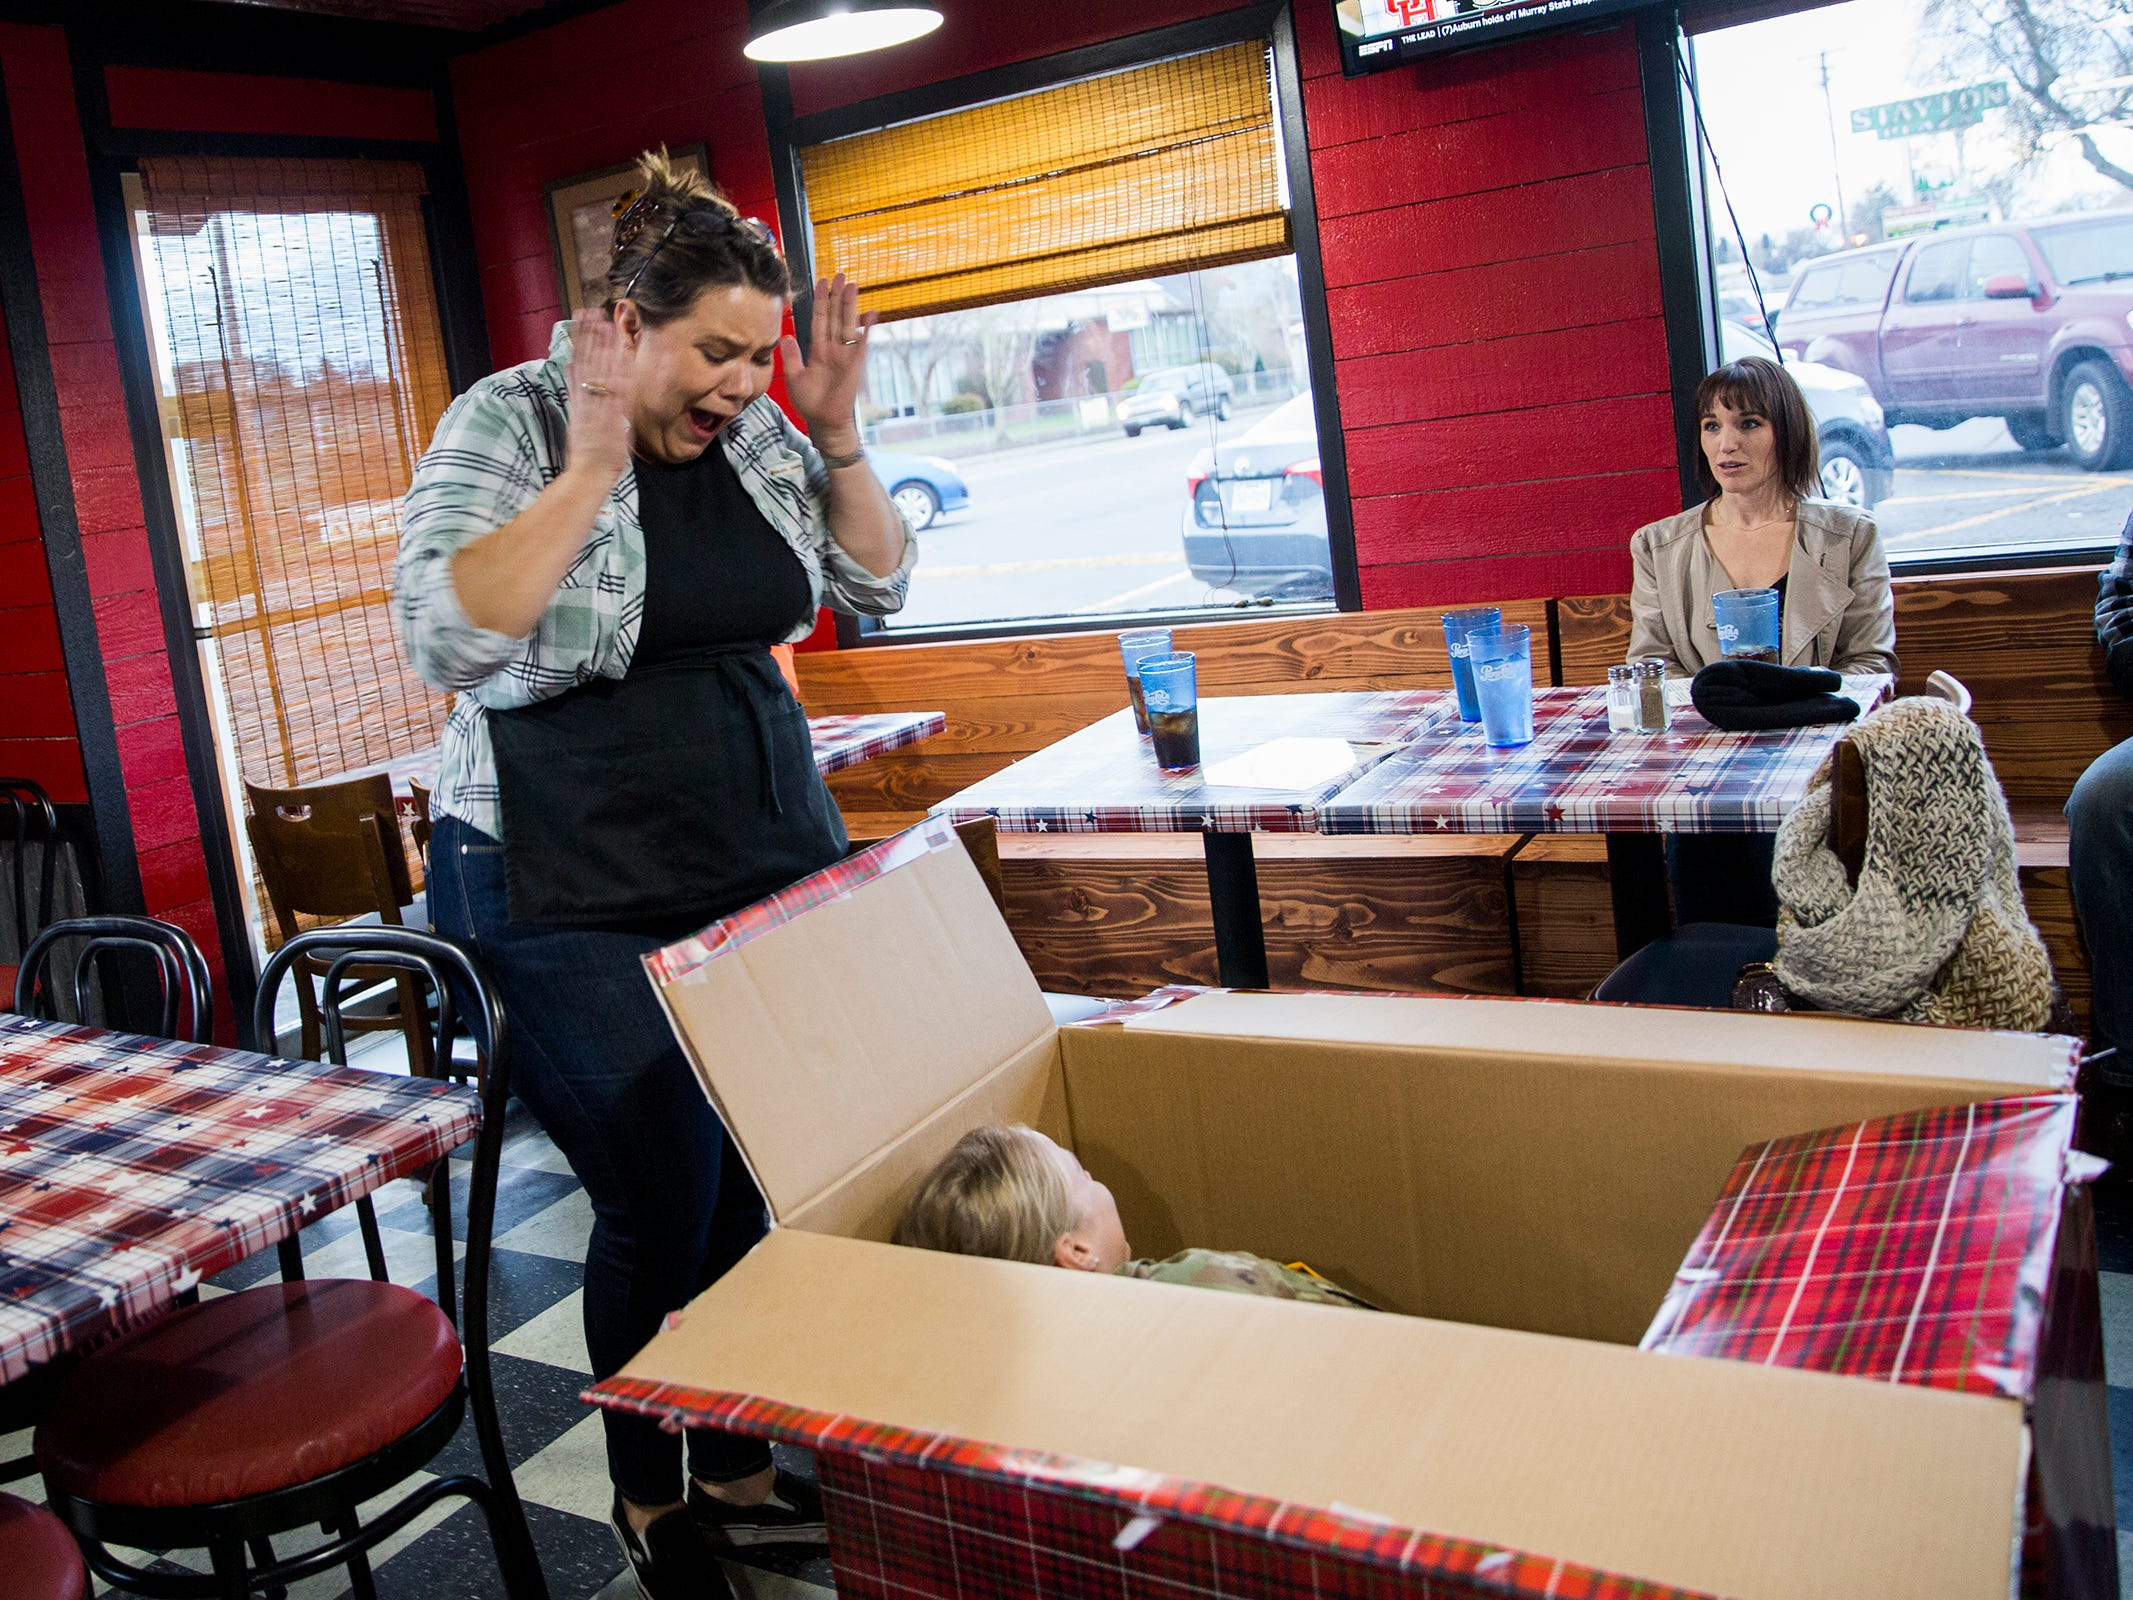 Julie Lorraine opens a present from her husband at her restaurant Squatchy's BBQ in Stayton on Saturday, Dec. 22, 2018. The present is her military daughter Courtney who she thought was still at basic training.